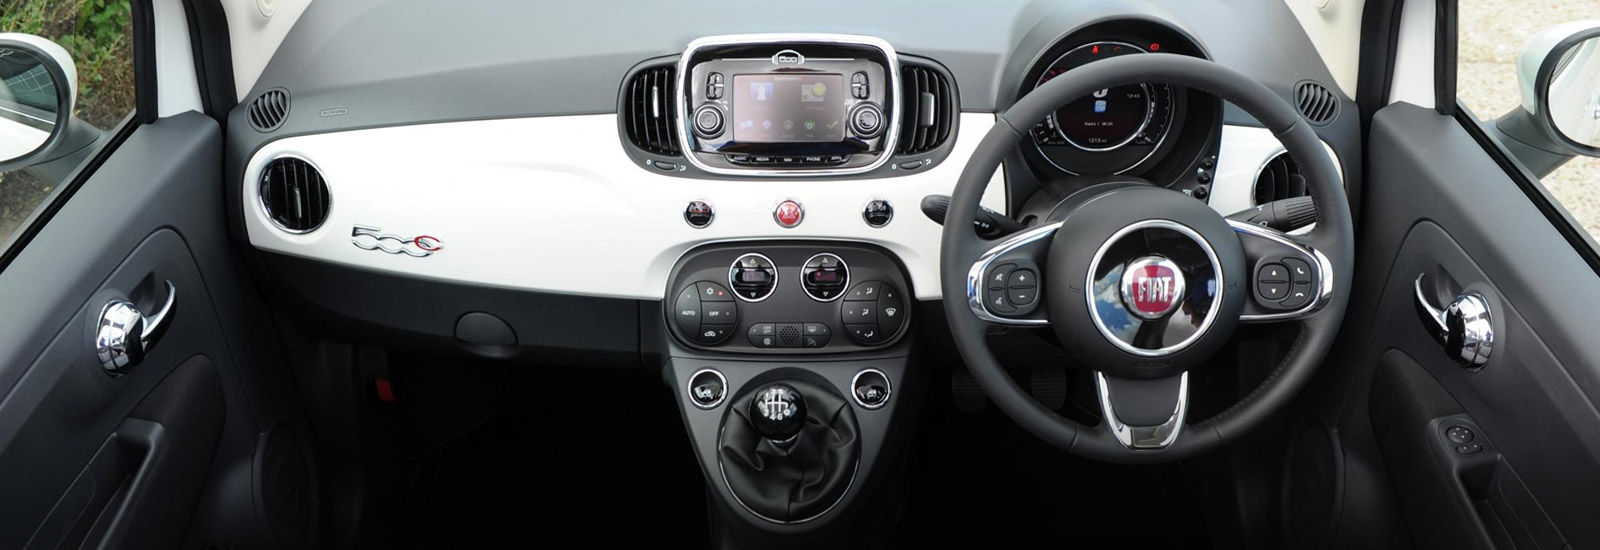 fiat 500 interior bing images